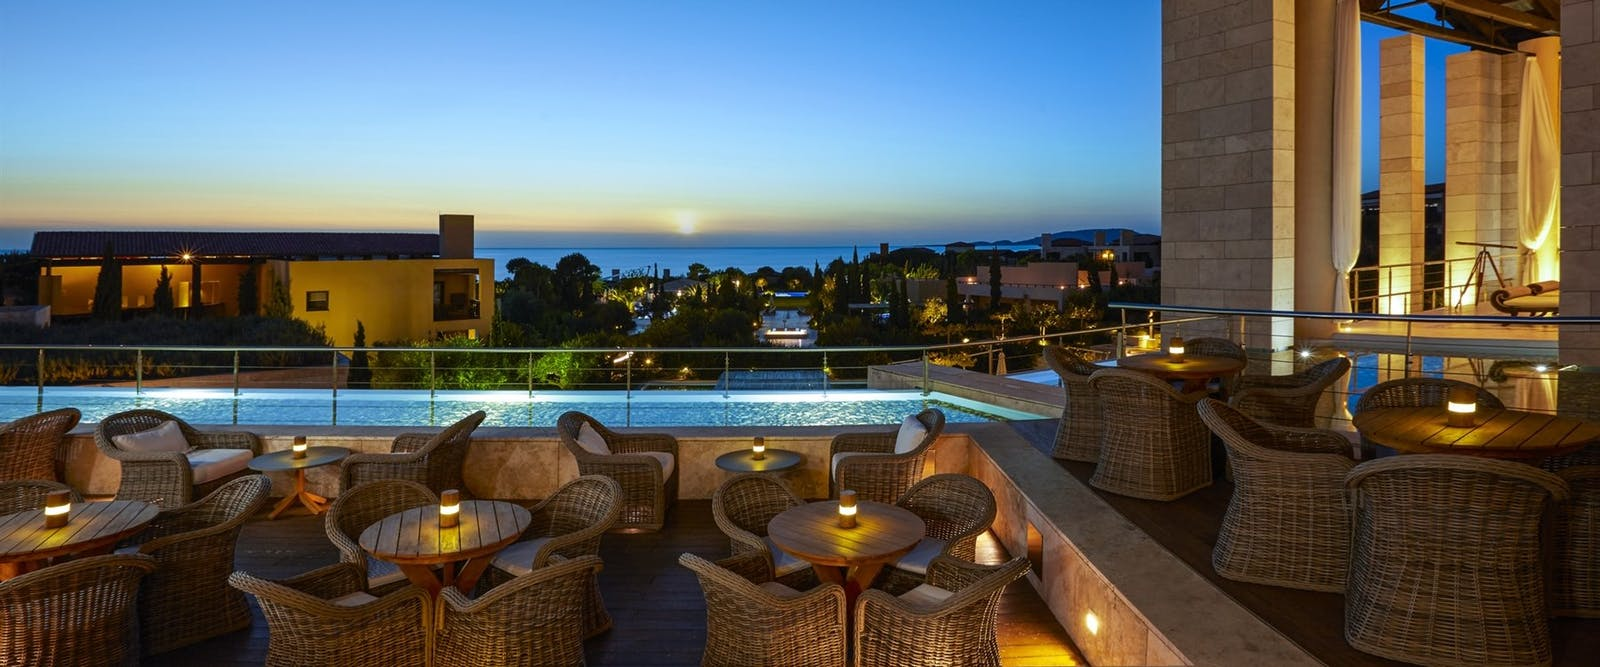 Anax Lounge at The Romanos, a Luxury Collection Resort, Peloponnese, Greece